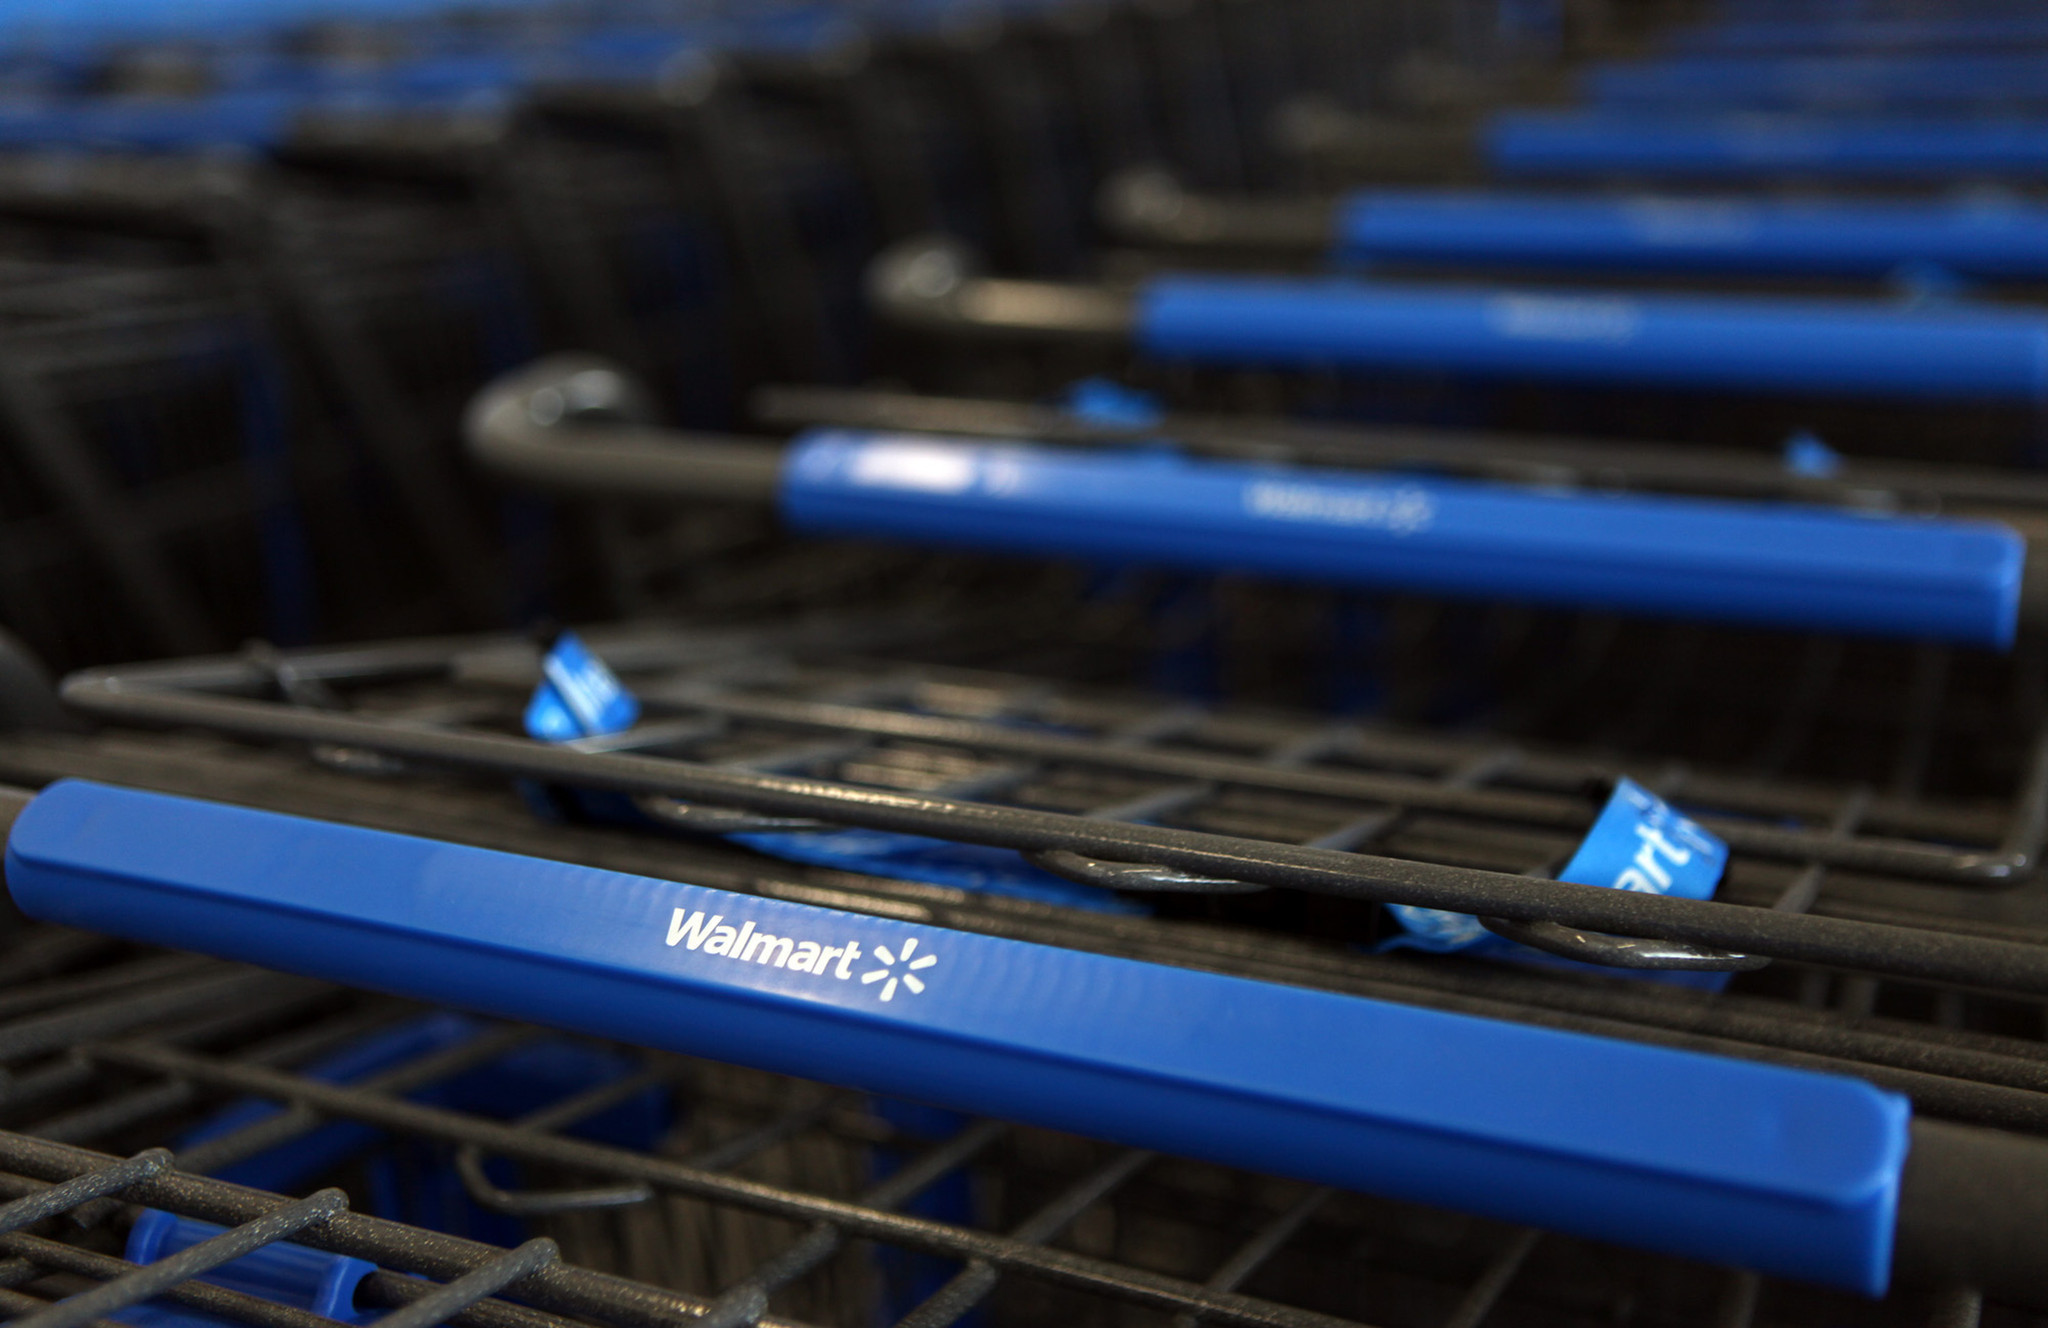 wal mart ends overnight hours at some locations chicago tribune walmart overnight jobs